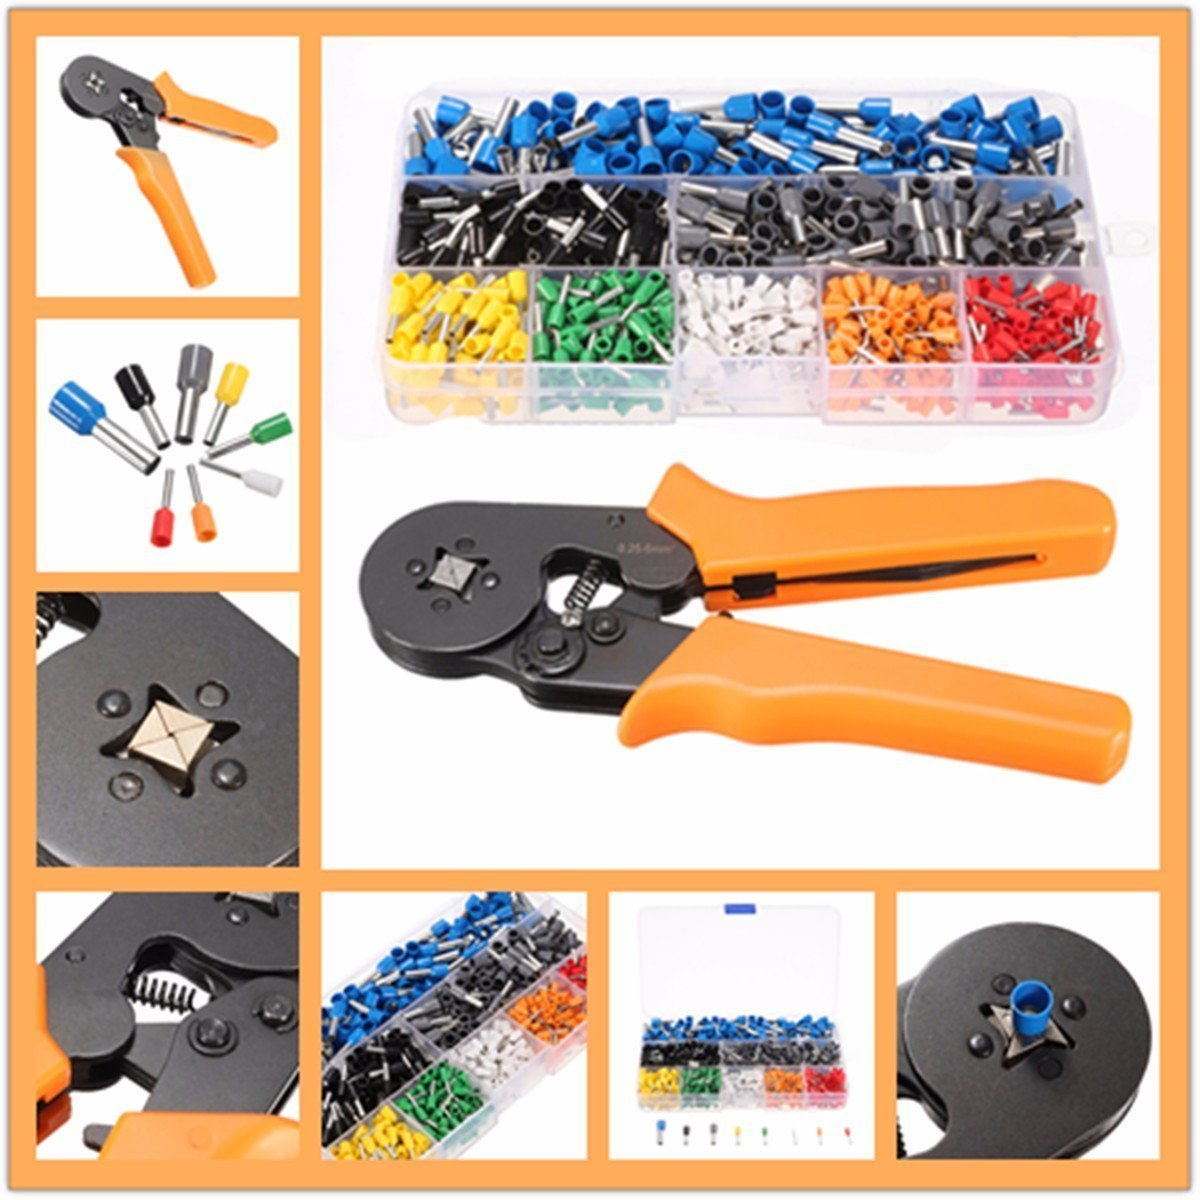 Qiunuo Ferrule Plier Tools With 800pcs Terminals AWG For Wire Crimping Tool Kit